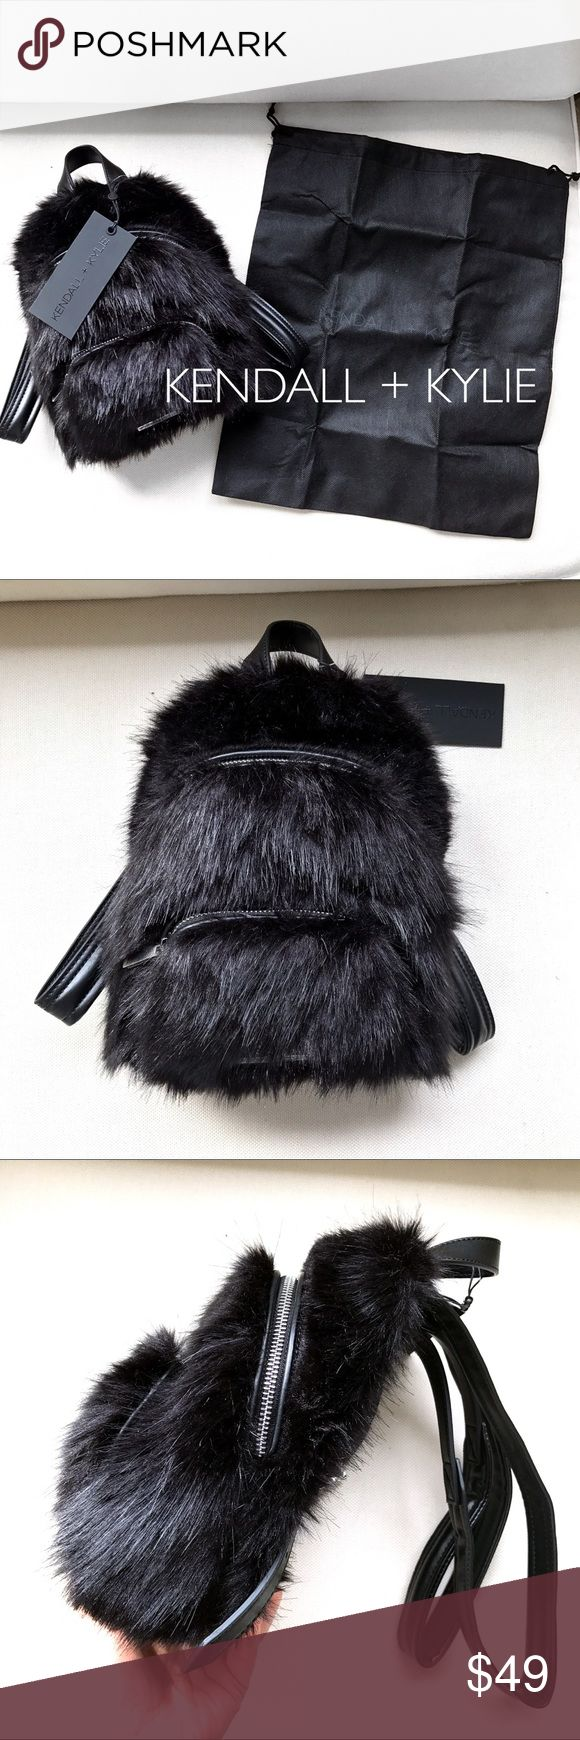 KENDALL + KYLIE Black Faux Fur Mini Backpack 🖤 Brand new, with tags. The faux fur is super fluffy and soft. 2 silver zipper pockets. The larger, main pocket has 2 small open pockets inside. Adjustable straps. Feedback that measures approximately 10 inches high, 4.5 inches deep and 8 inches wide. Business card pocket in the back of the backpack. Kendall & Kylie Bags Backpacks